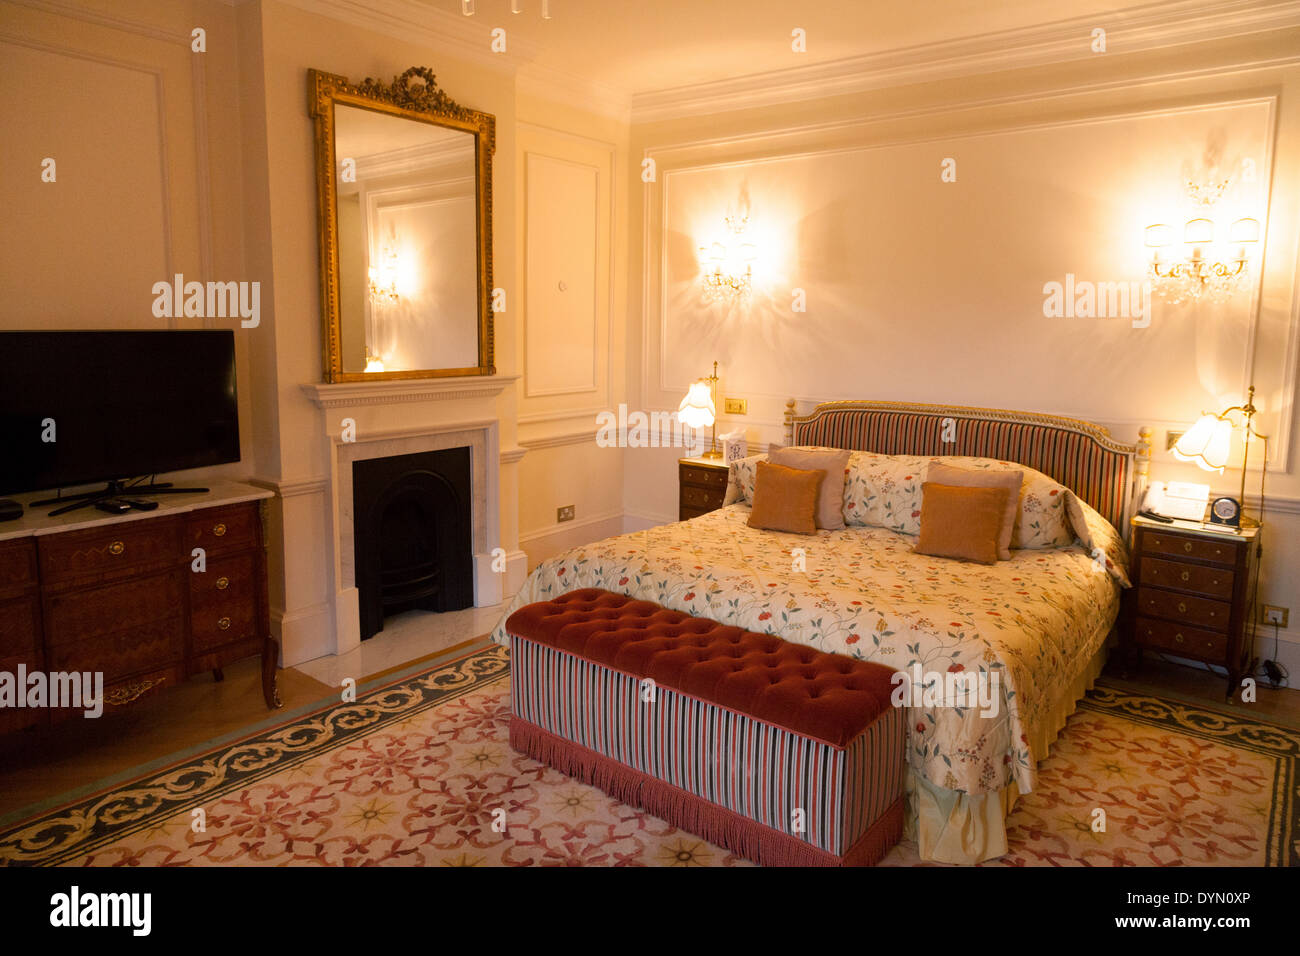 A guest bedroom and bed in a luxury suite, The Ritz Hotel, Piccadilly, London SW1 England UK - Stock Image